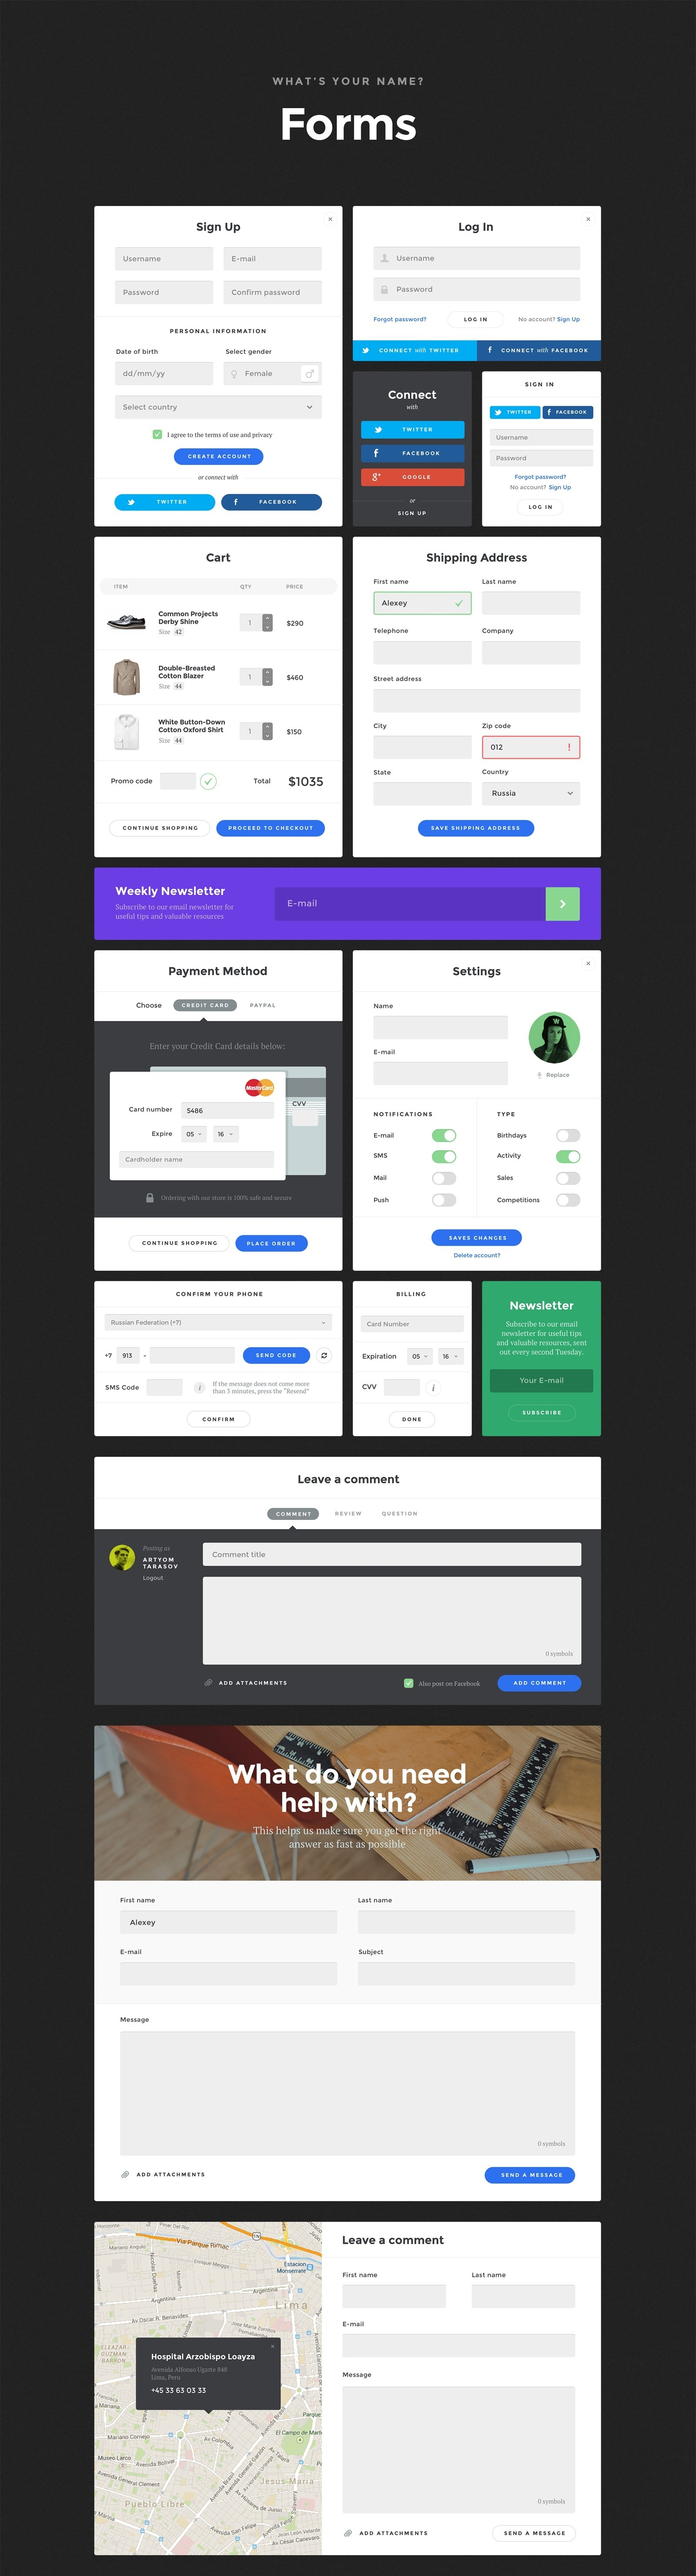 7 Forms - Baikal UI Kit - Huge Set Of UI Components